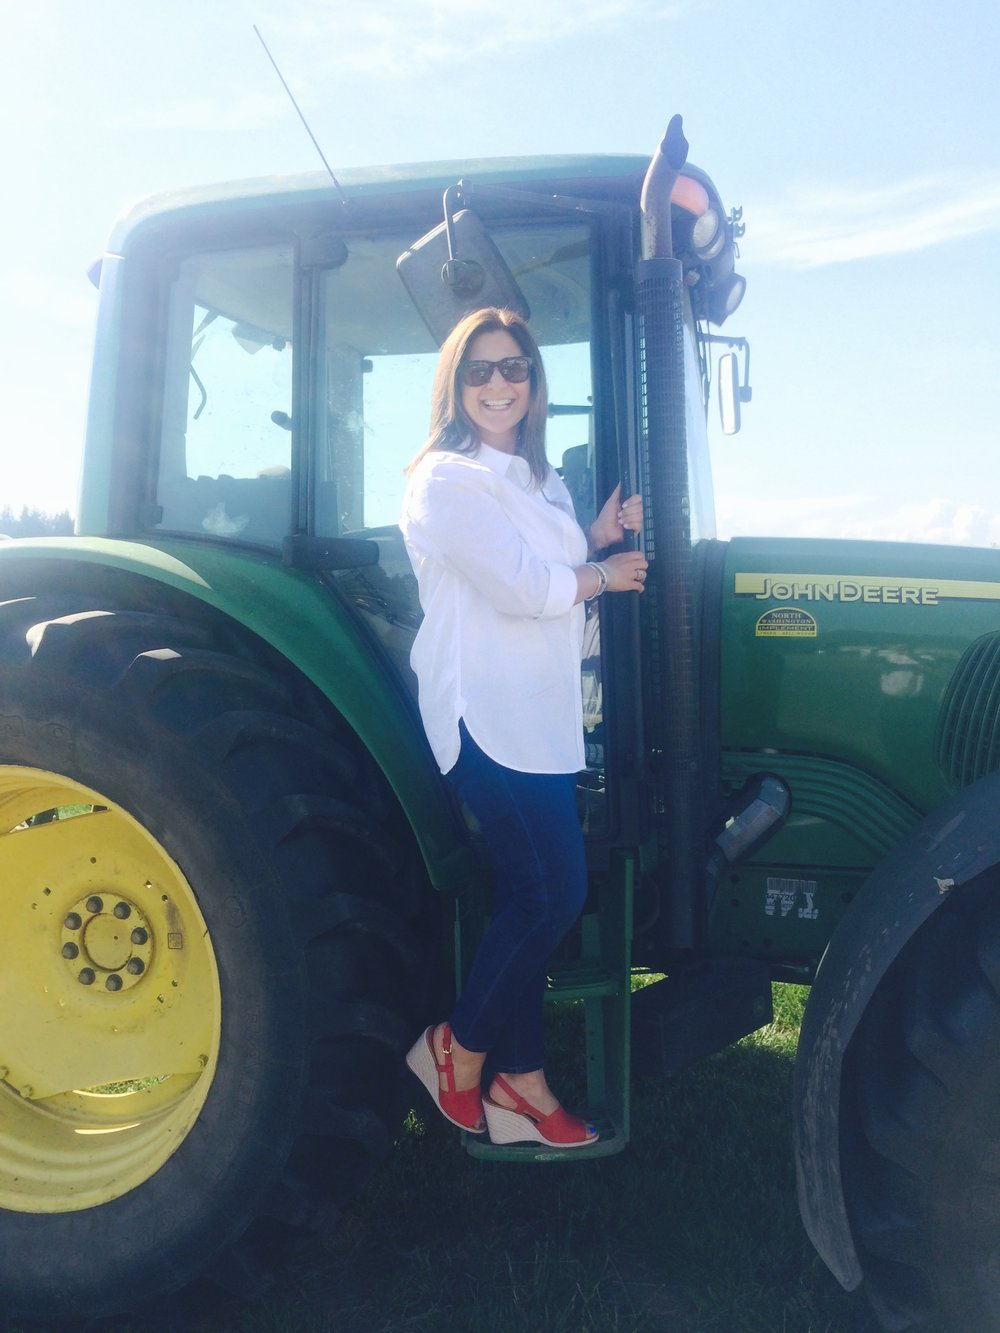 Fun on a tractor during a work event